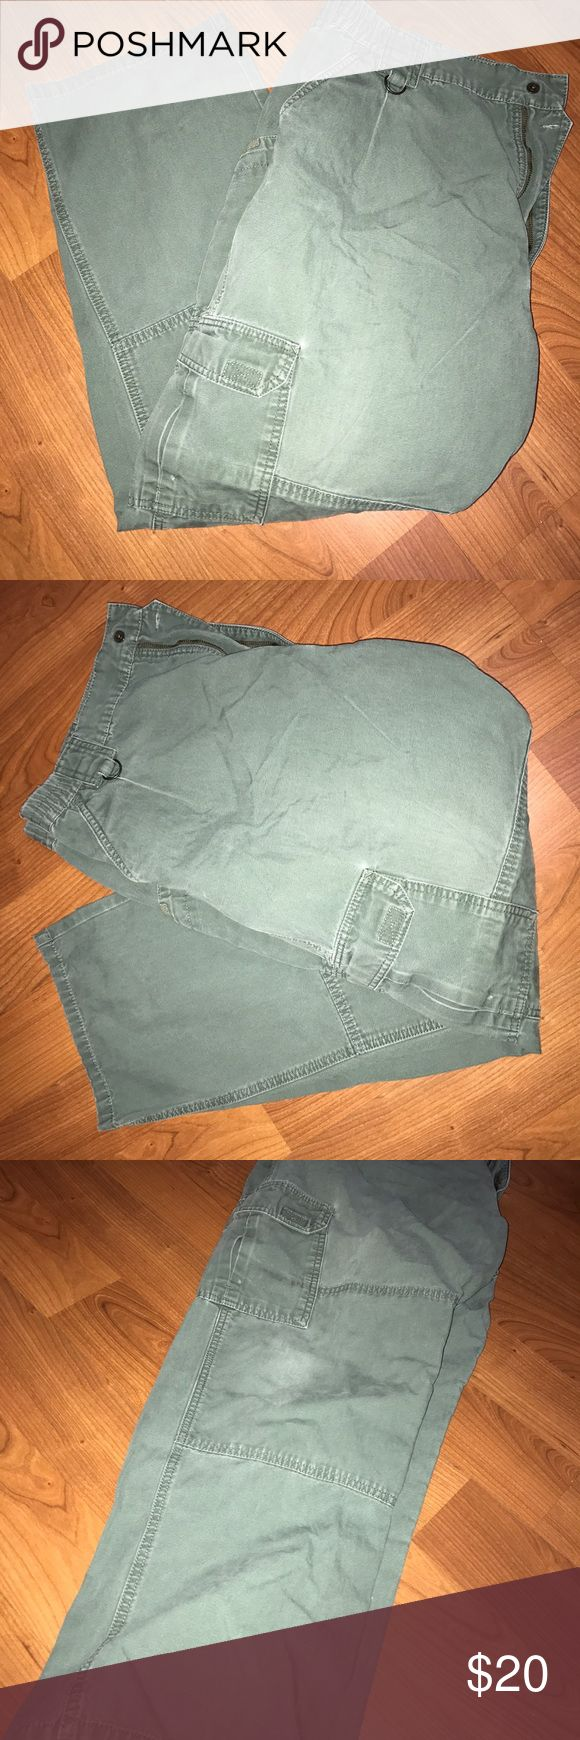 511 Tactical Series Pants Tactical Series Pants in good condition, olive green 511 Pants Cargo